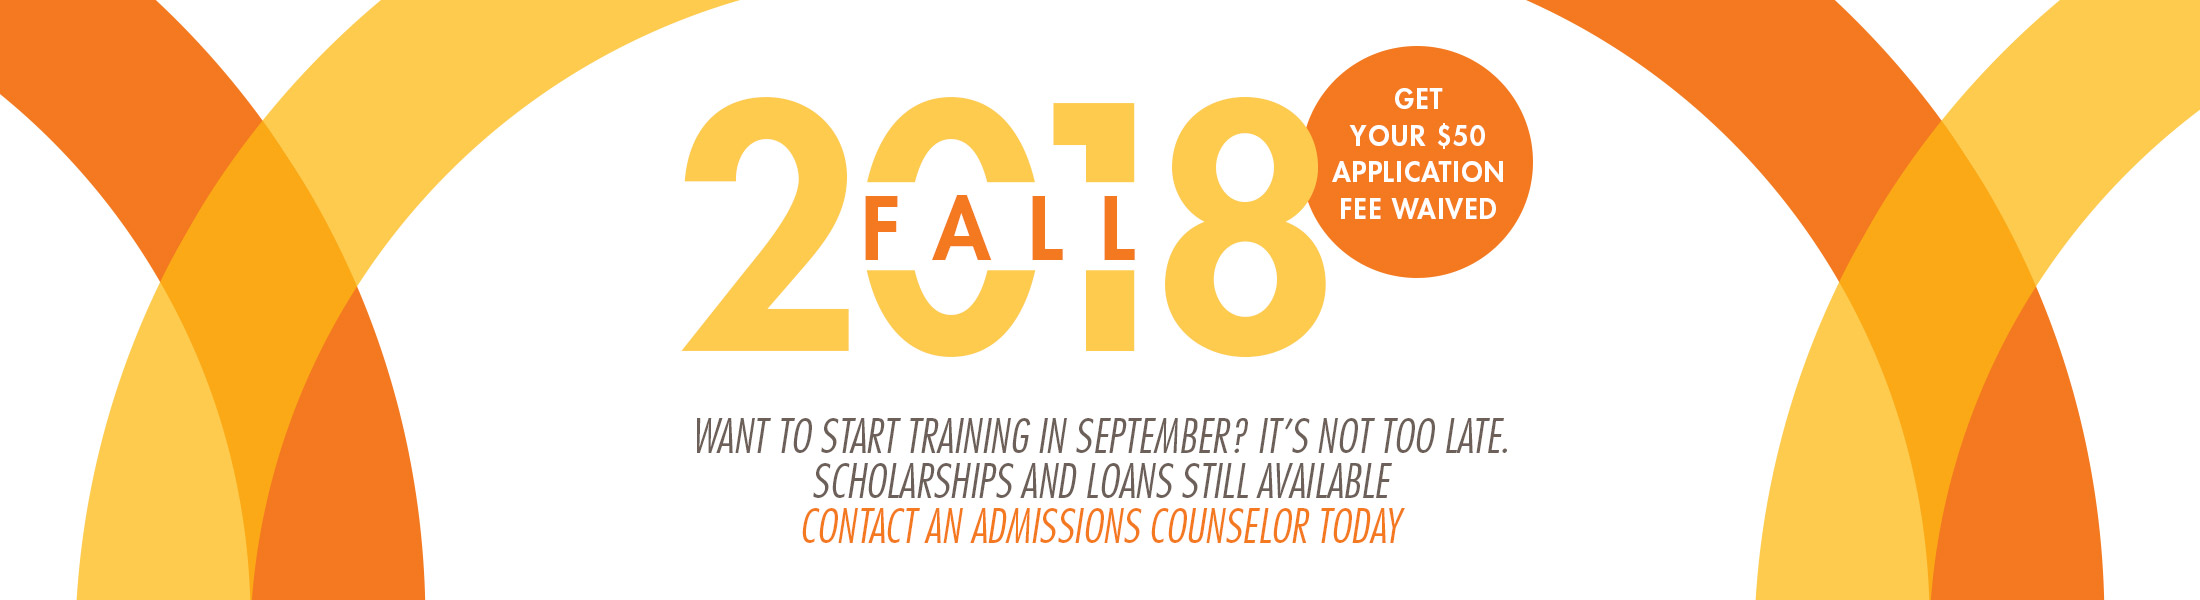 Apply for admission to the Fall 2018 semester